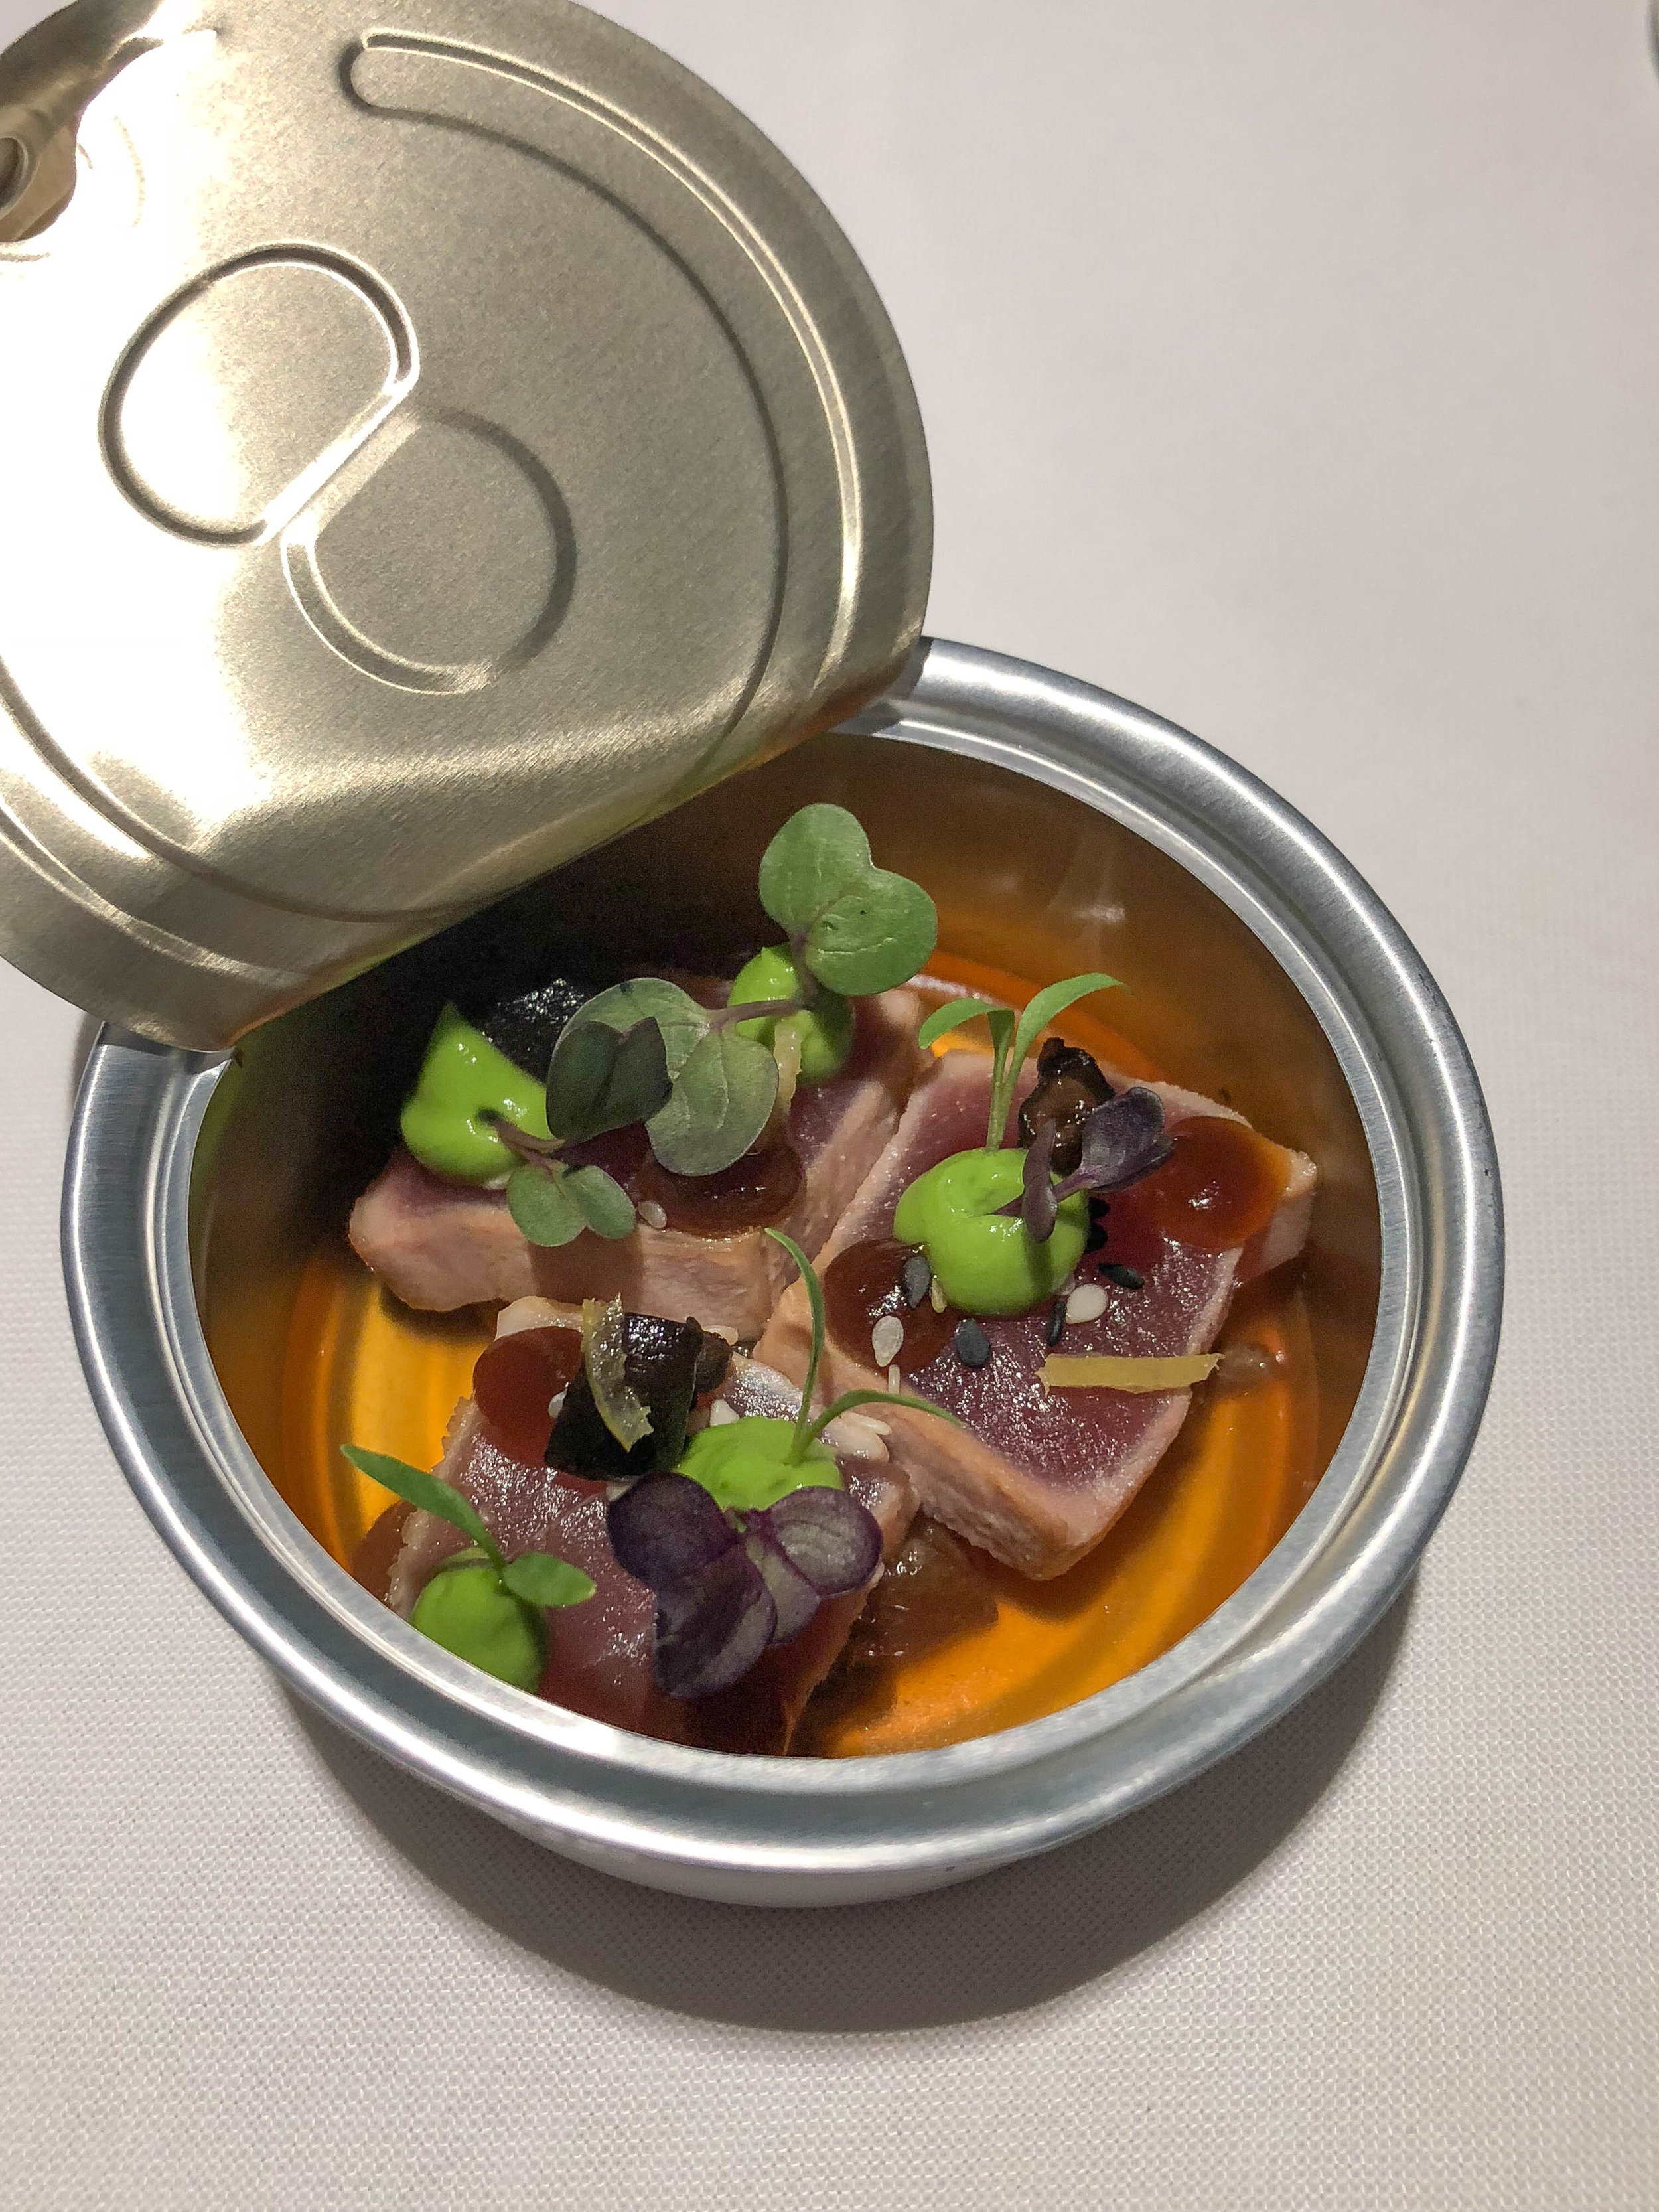 La Colombe's famous tuna dish. You're served a can of tuna, which you open up to find slices of perfectly seared raw tuna topped with wasabi cream, sesame, and an umami broth. I'd say it's like magic but my packaging science husband explained how they do it.